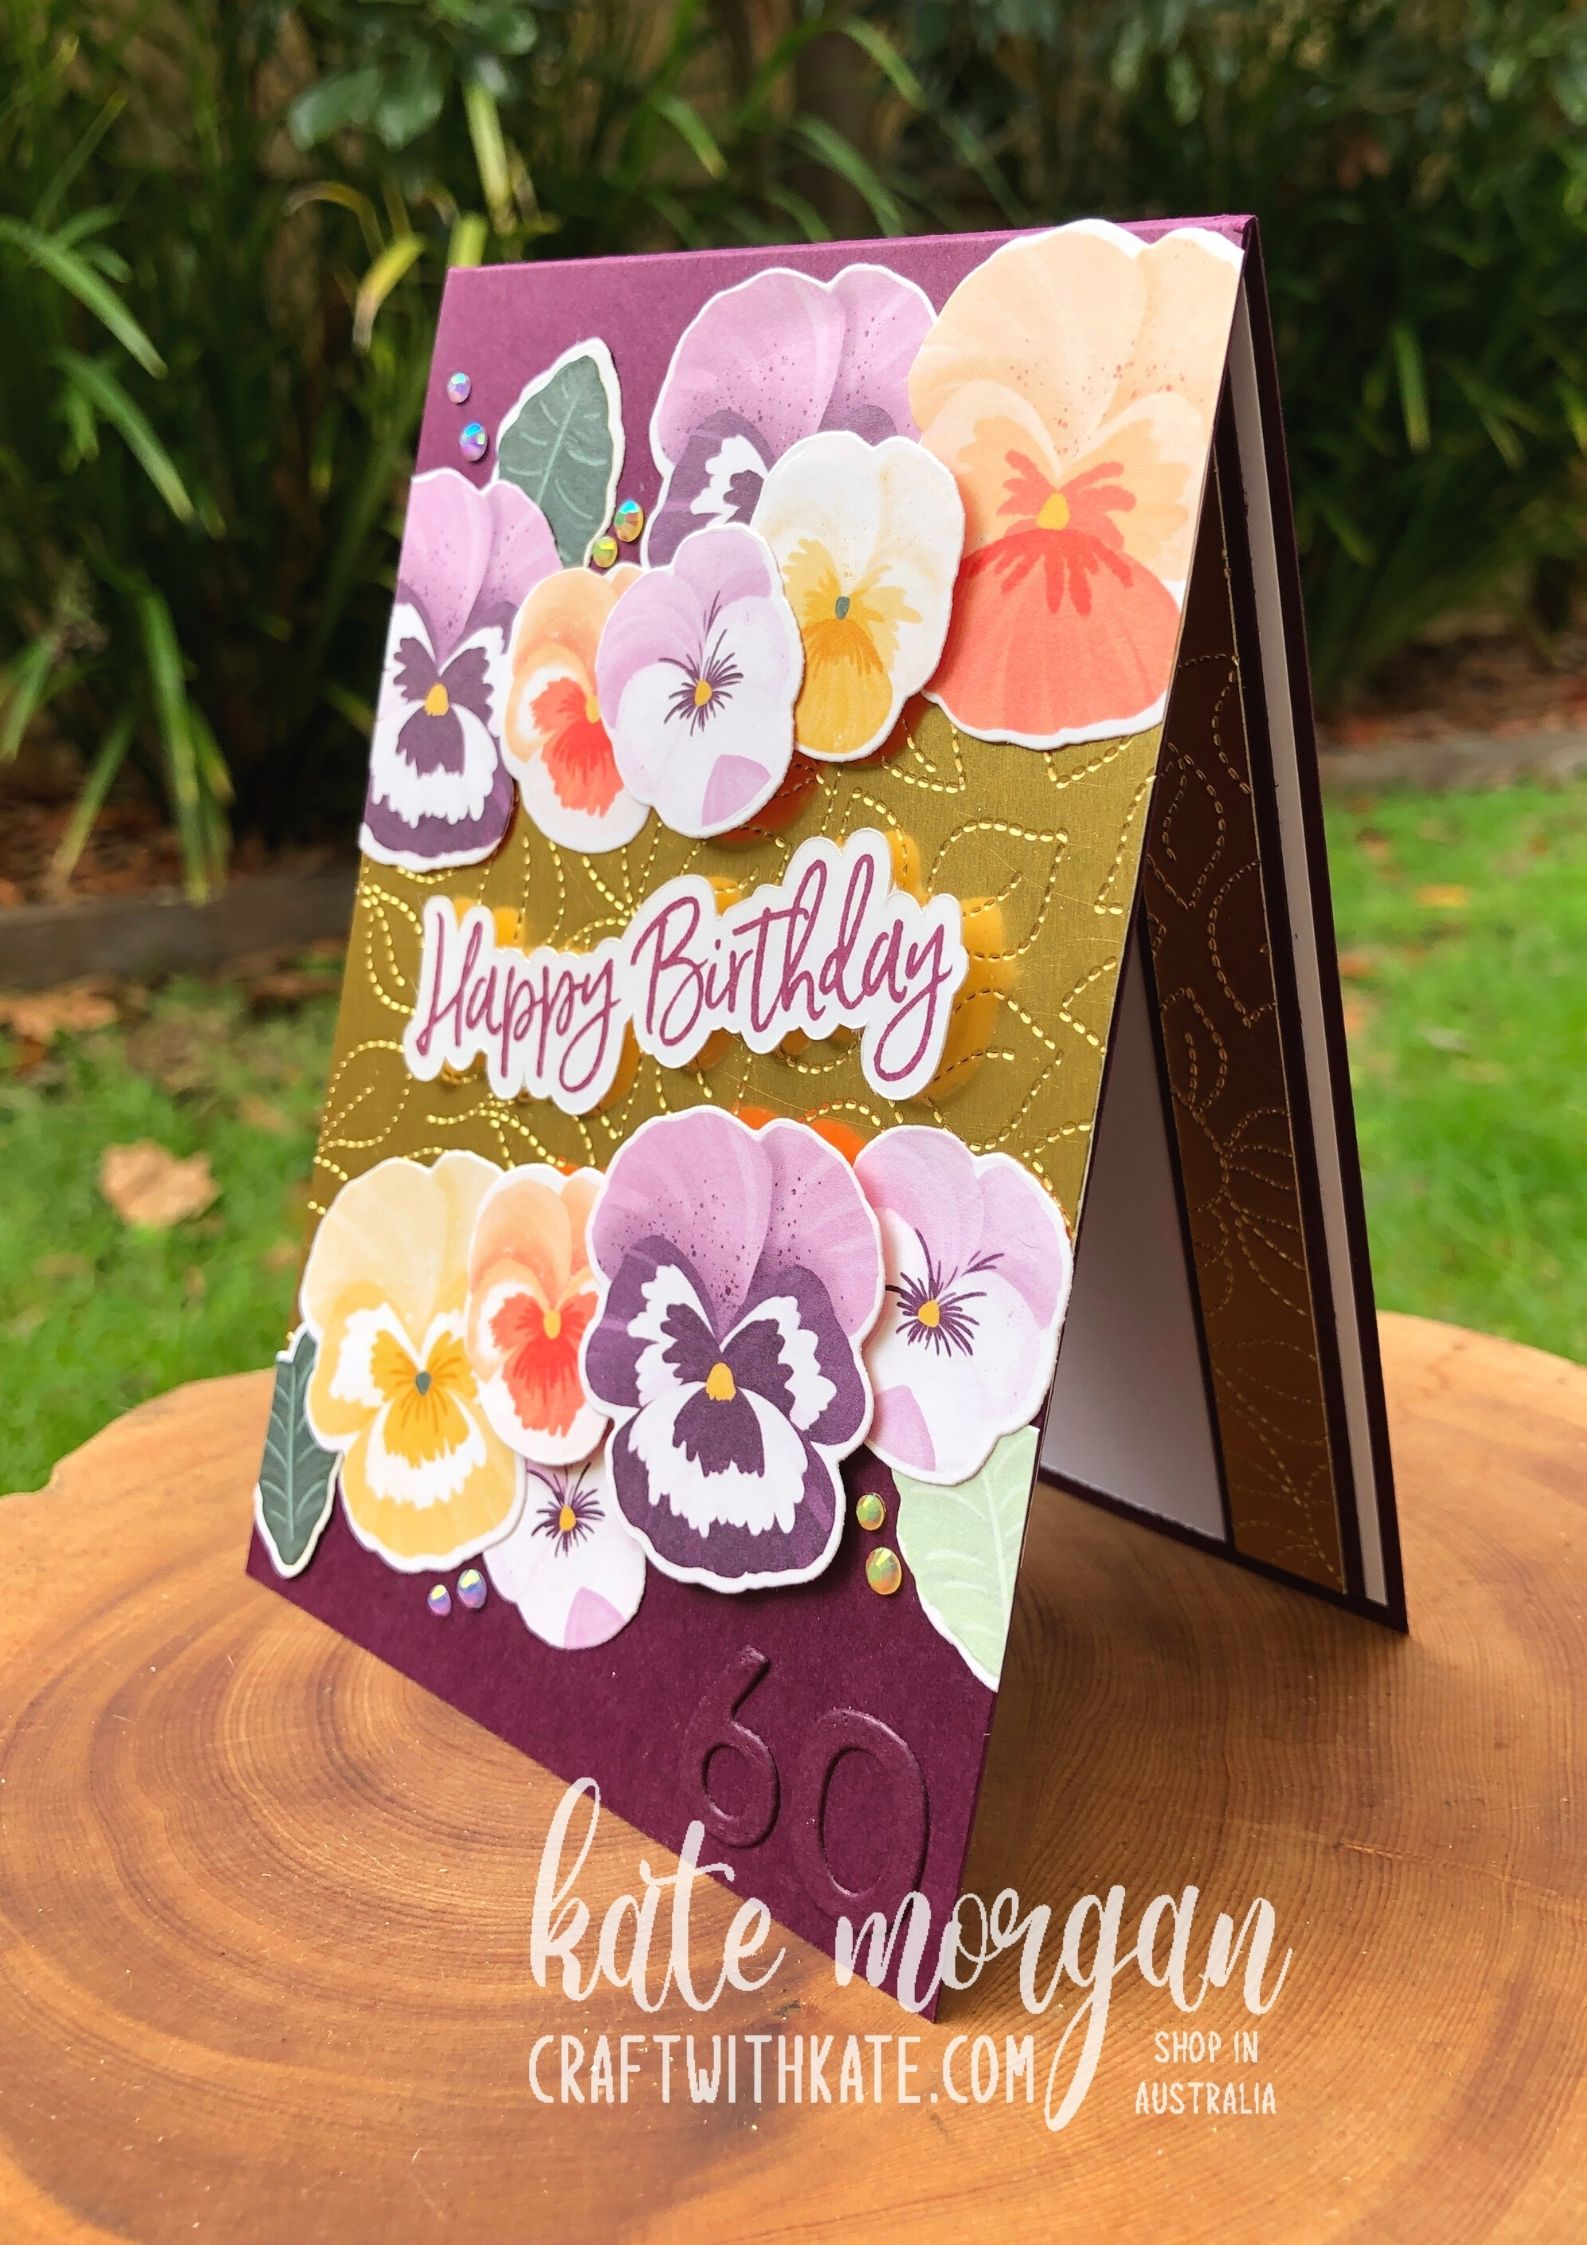 60th birthday cards using Pansy Petals for Blackberry Bliss CCBH 2021 by Kate Morgan Stampin Up Australia.